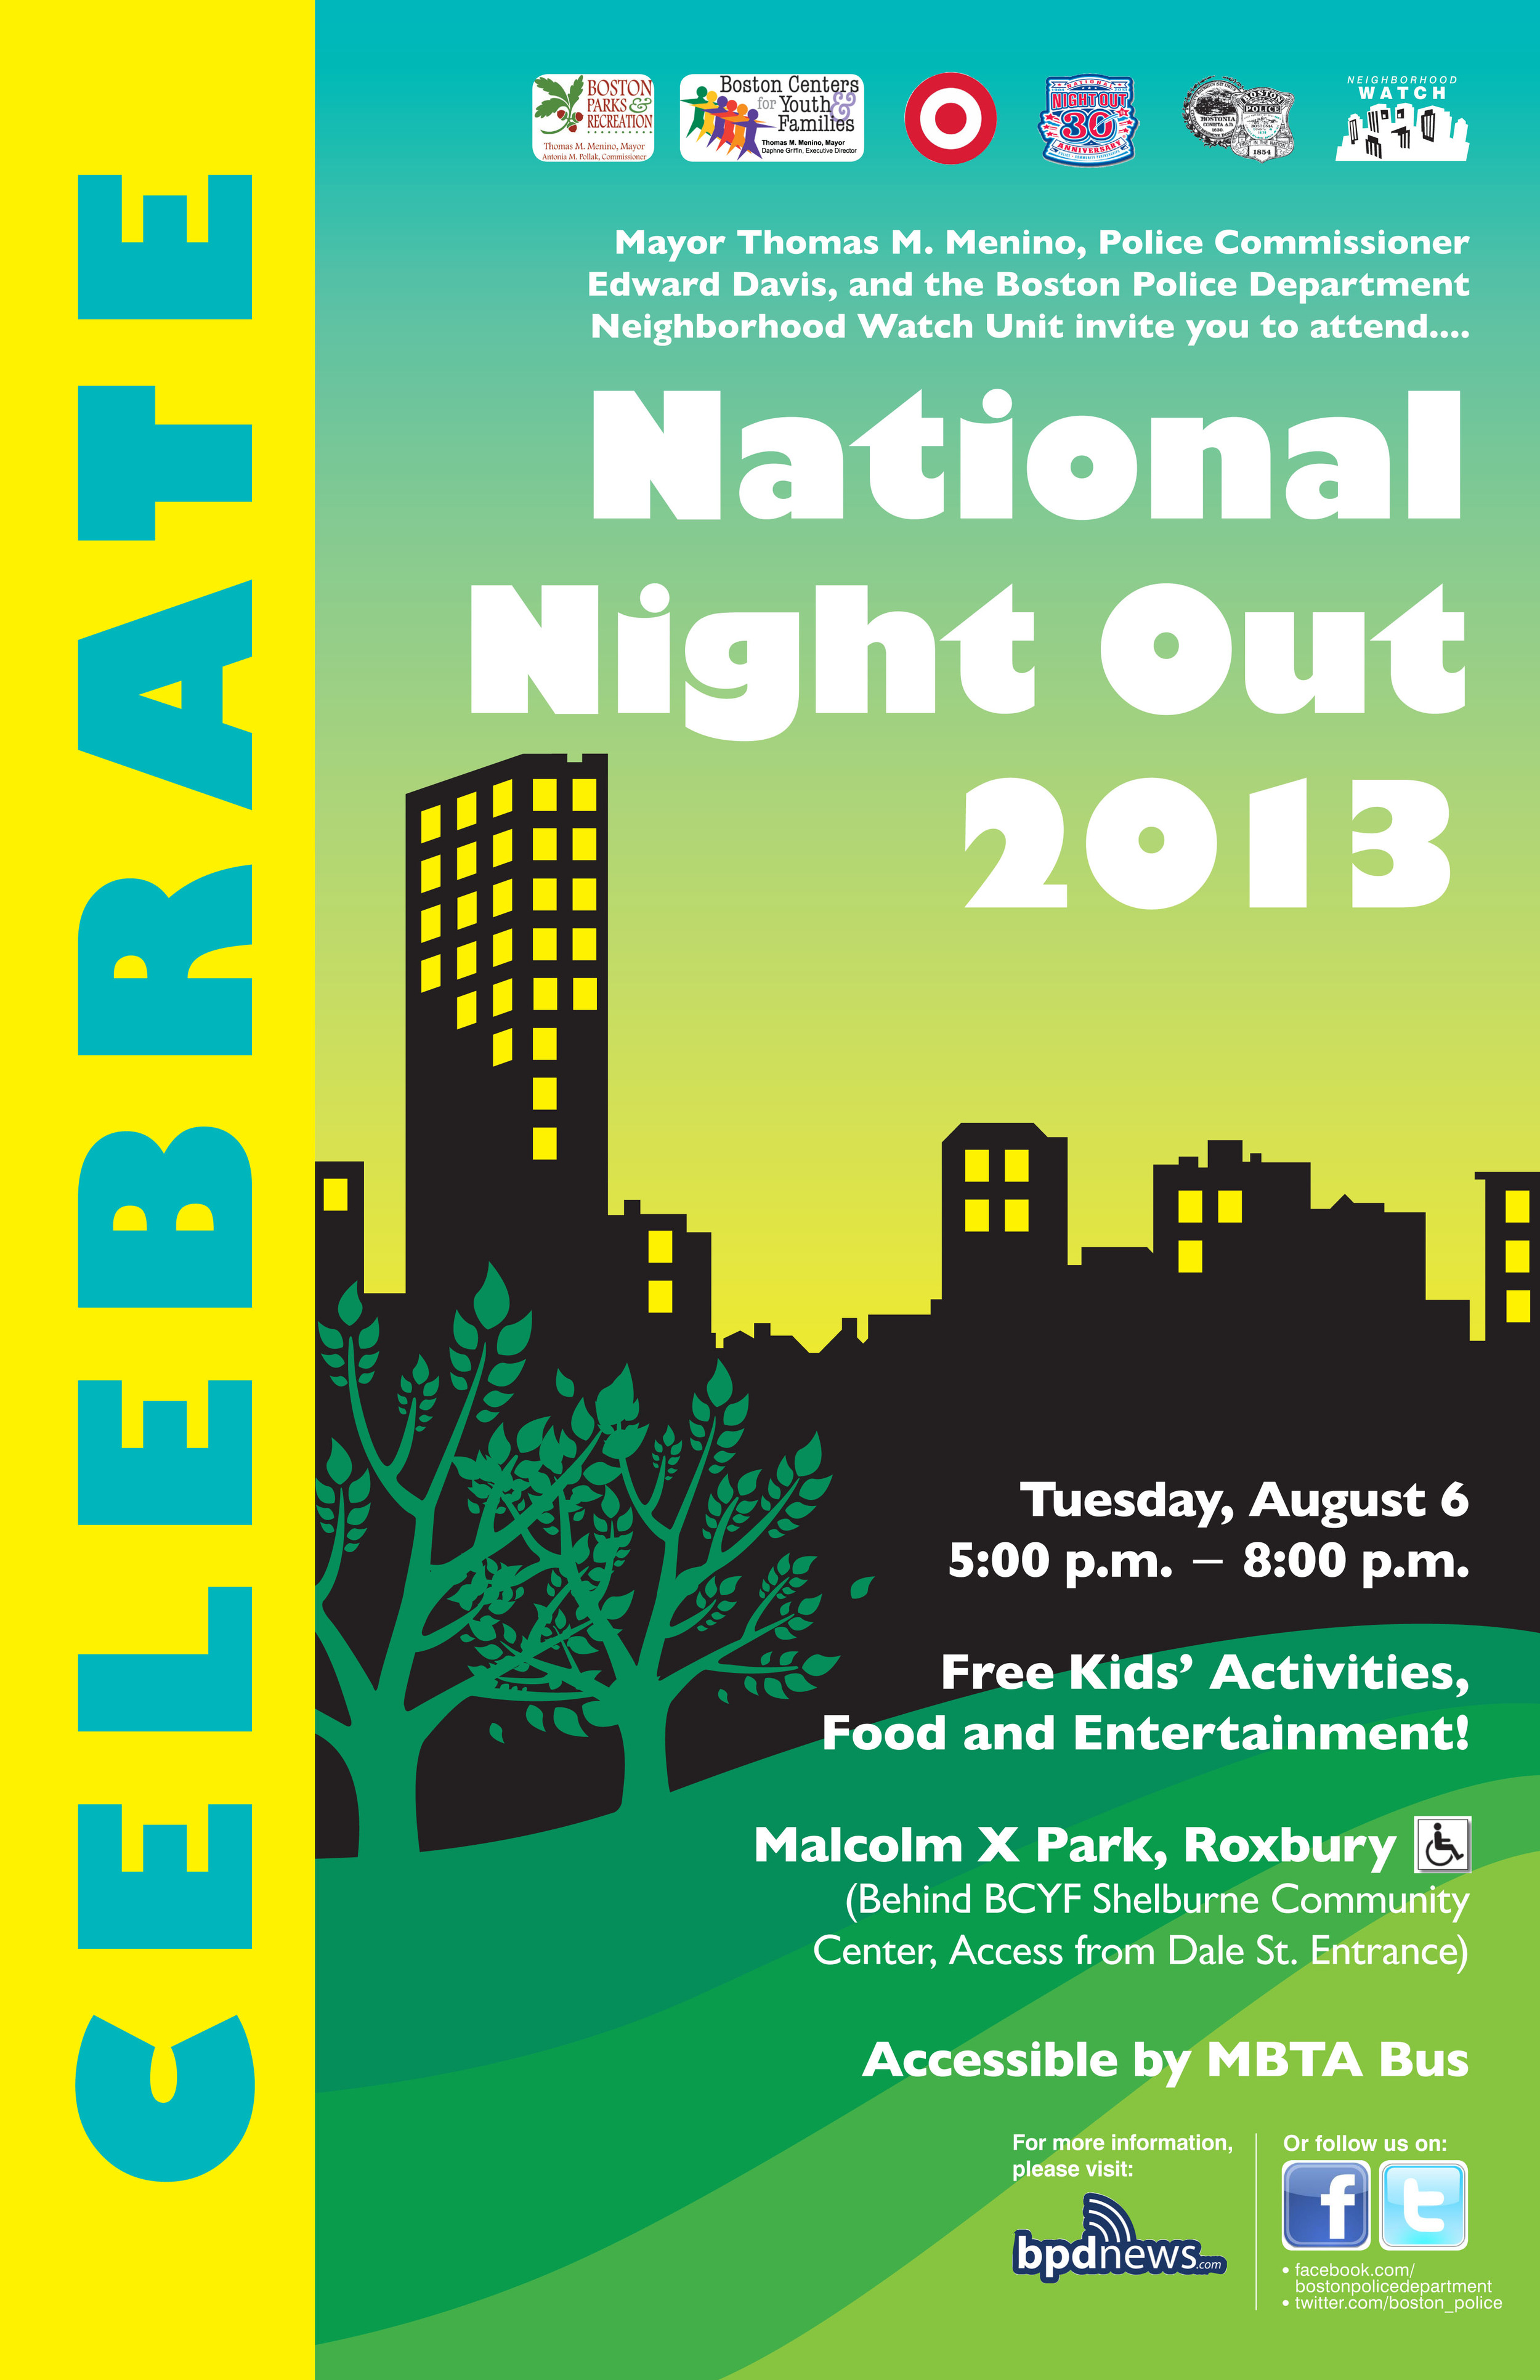 National Night Out Poster 2013 - 11x17.jpg